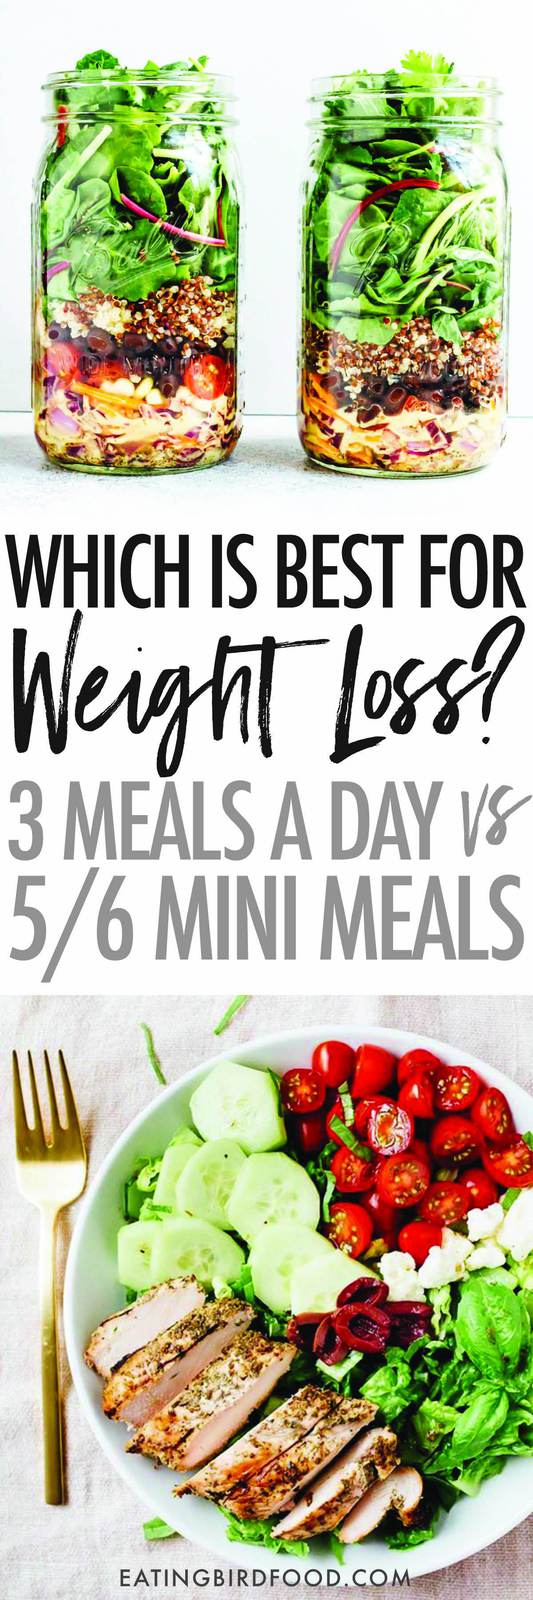 We've been told for years that the key to healthy eating, weight loss and weight management is eating 5/6 mini meals throughout the day, but is it right for everyone?